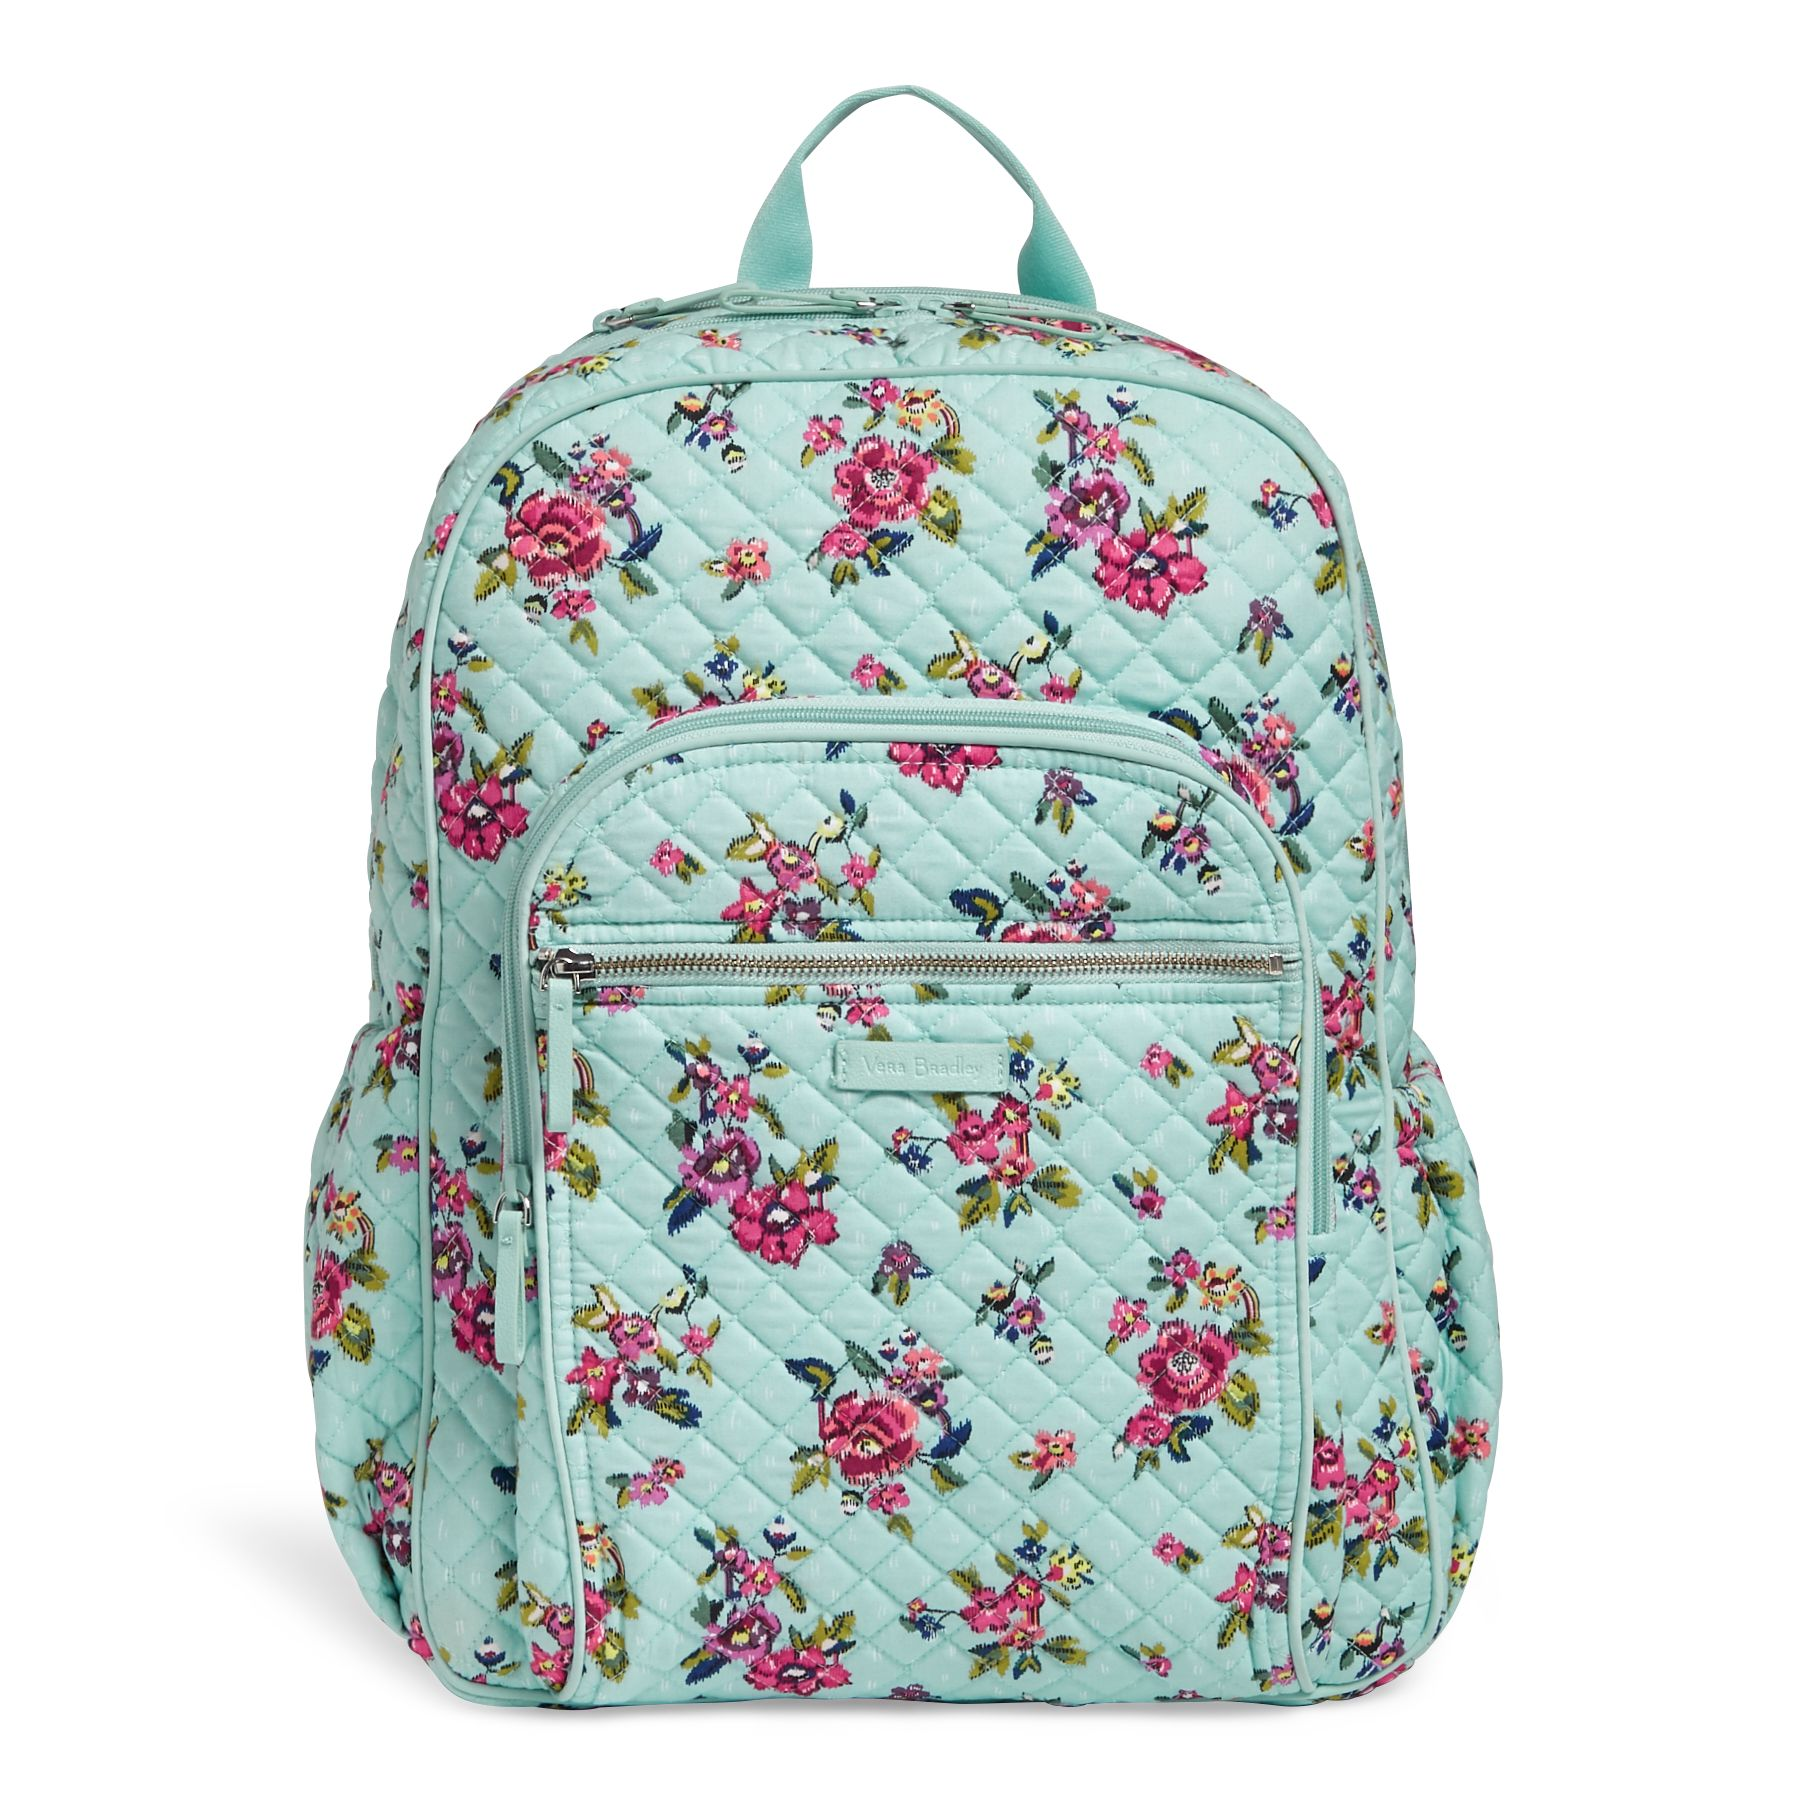 8dfb85f92e7a Iconic Campus Backpack